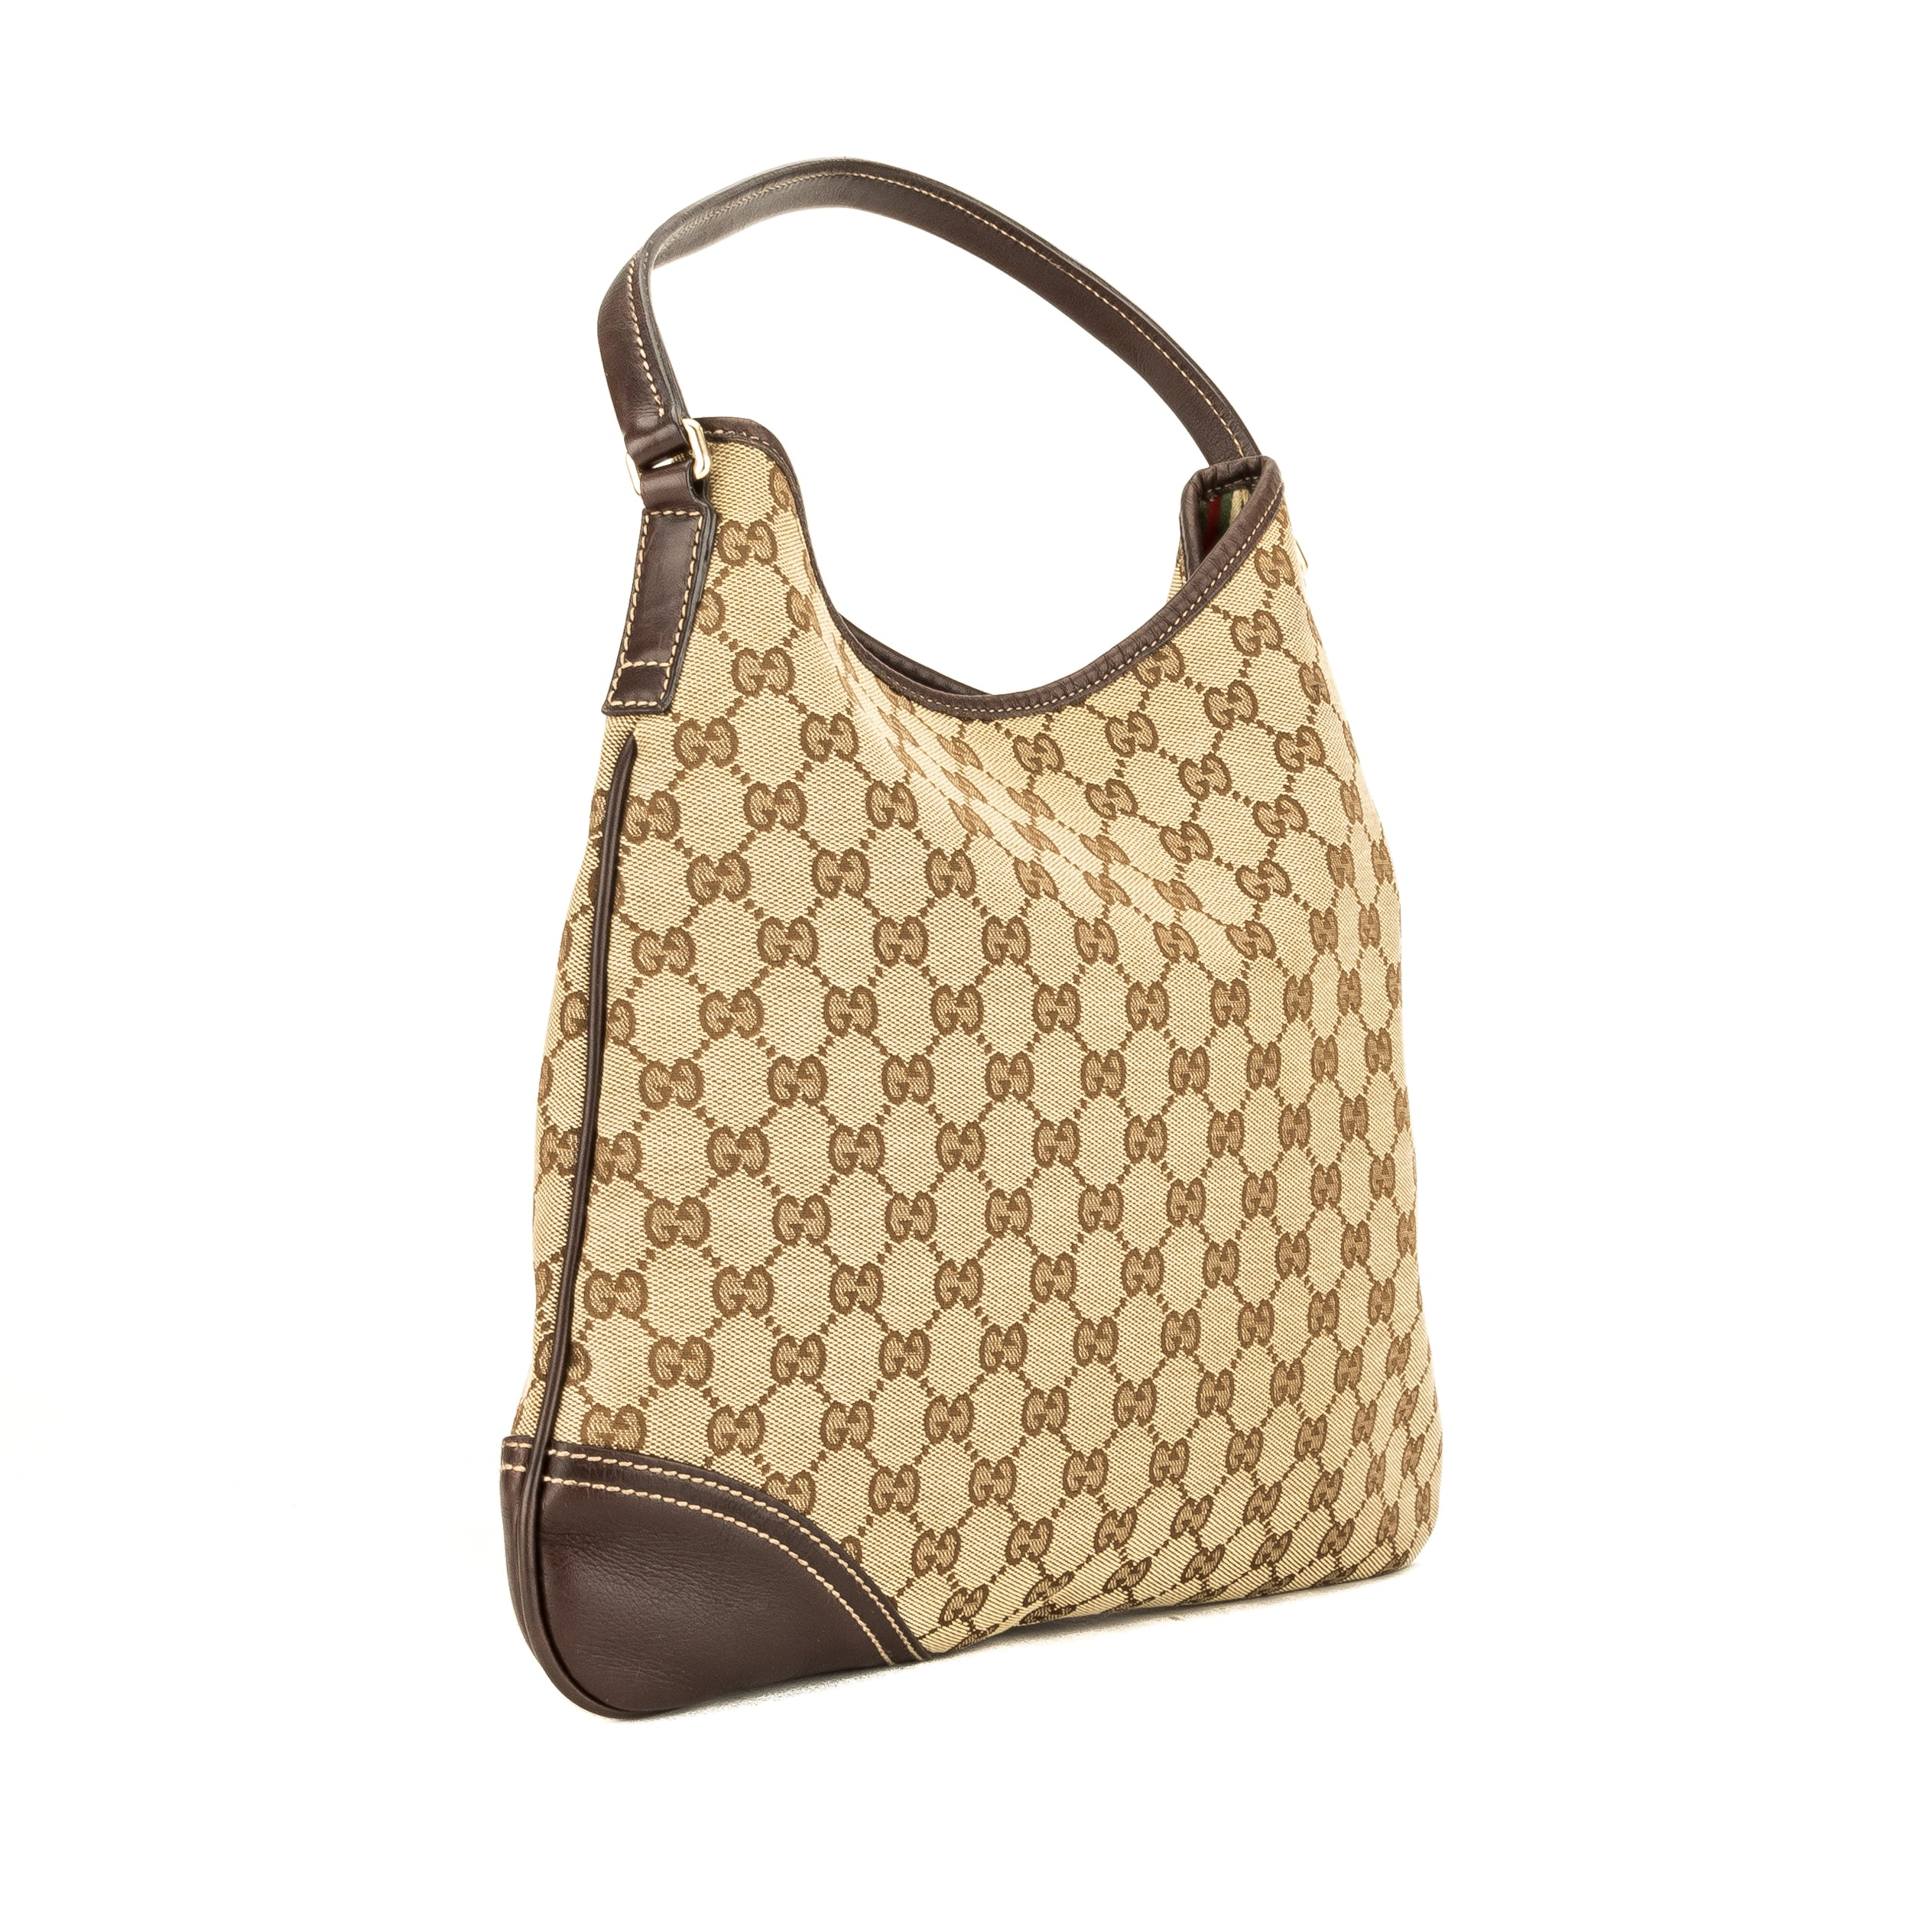 6ccb49bbad9 Gucci Brown Leather GG Canvas Medium Britt Hobo Bag (Pre Owned) - 3890005